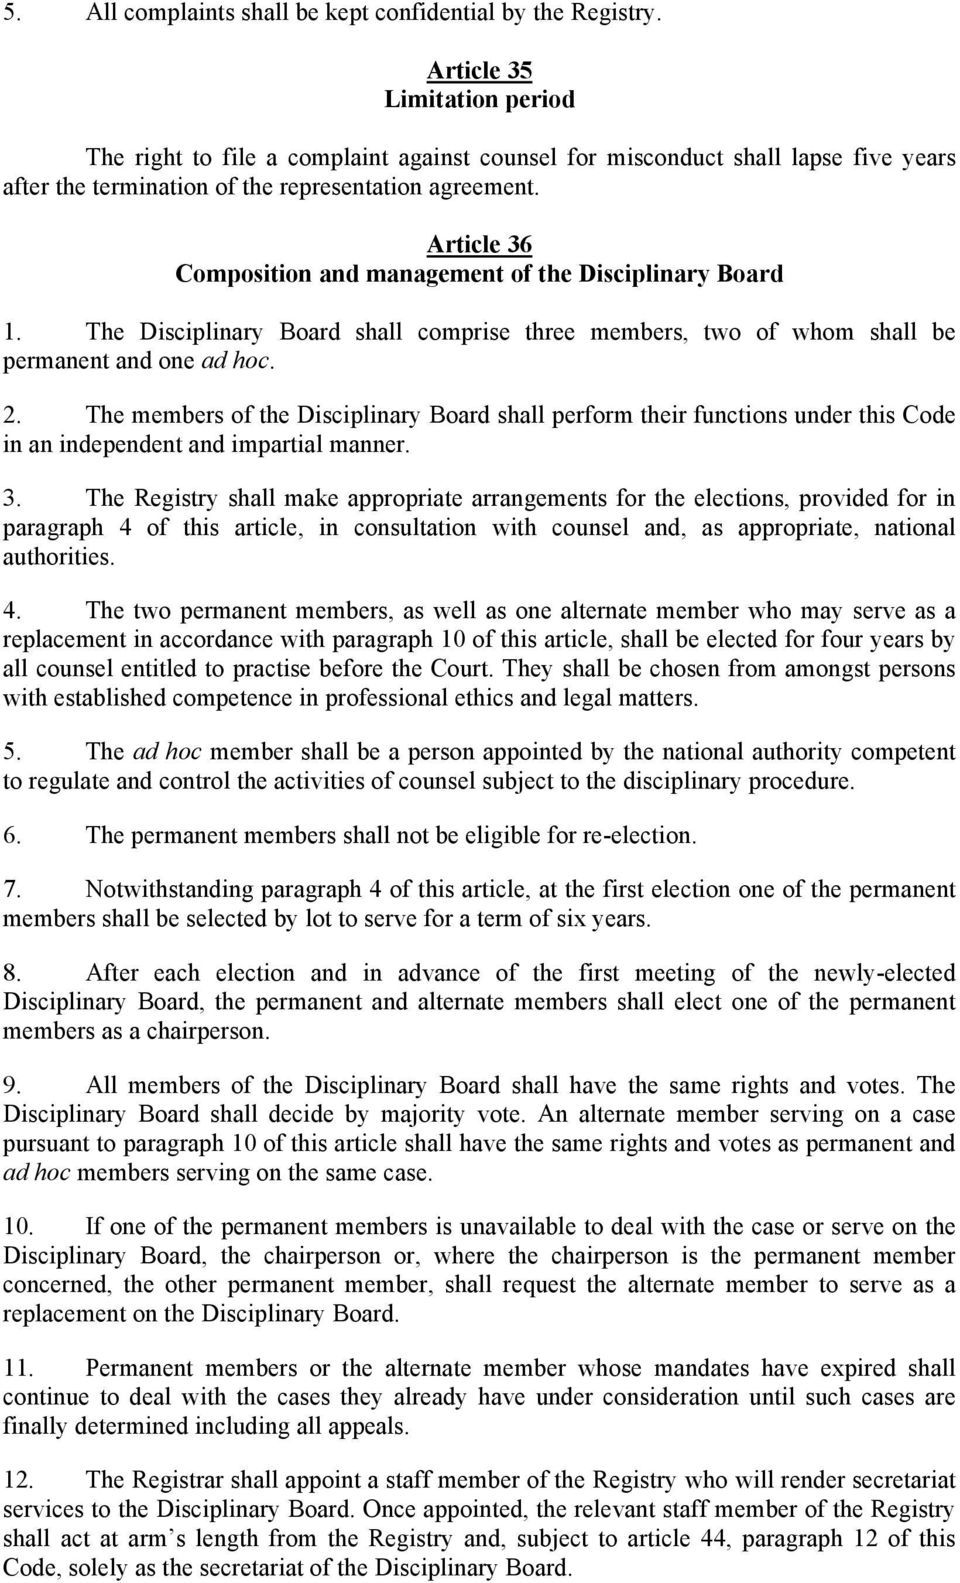 Article 36 Composition and management of the Disciplinary Board 1. The Disciplinary Board shall comprise three members, two of whom shall be permanent and one ad hoc. 2.